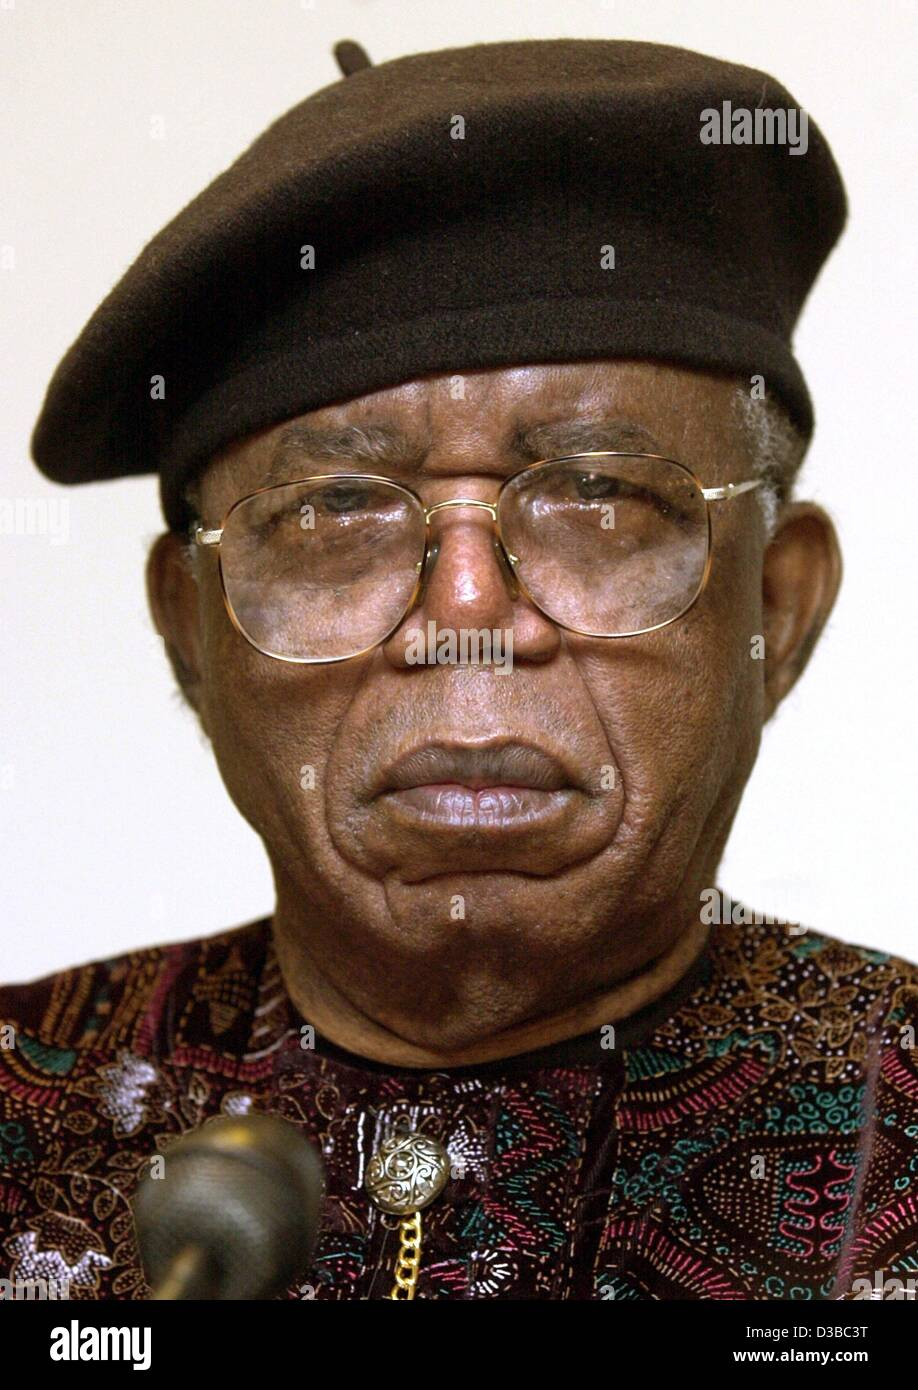 dpa ian author chinua achebe pictured in frankfurt  dpa ian author chinua achebe pictured in frankfurt 12 2002 achebe has published novels essays short stories and poems since the 1950s